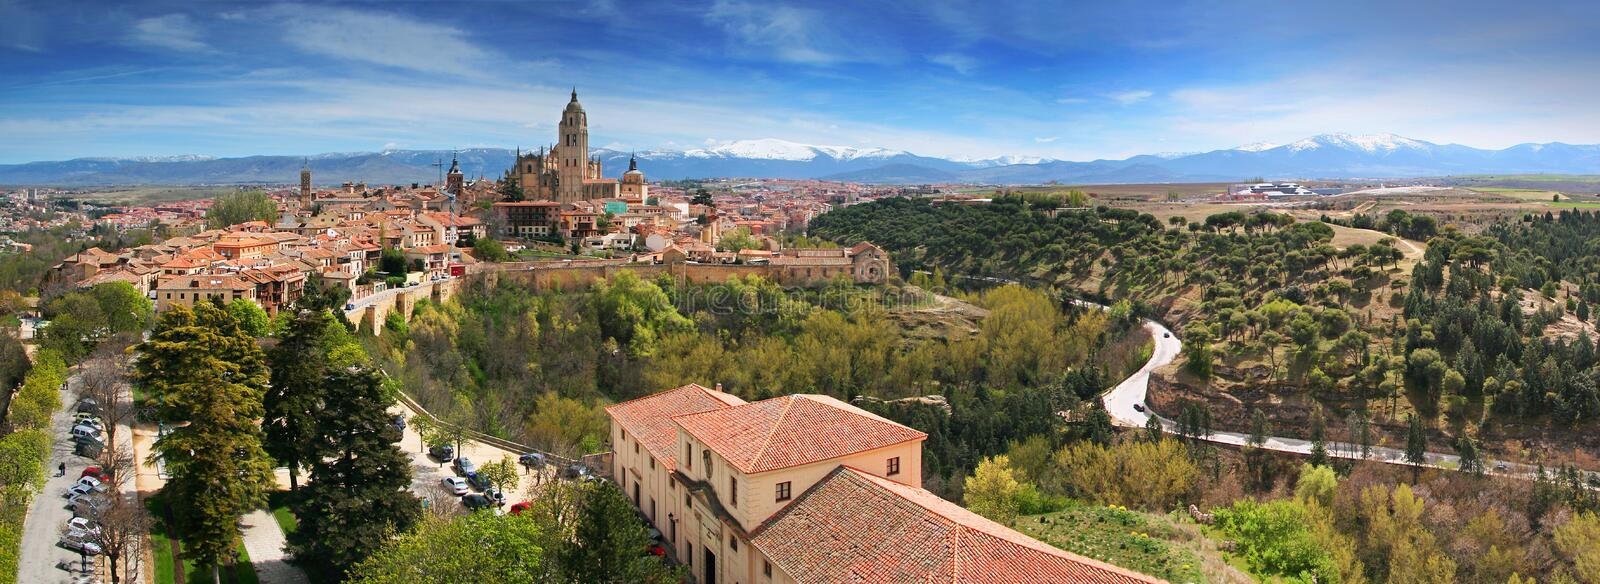 Segovia. City , panoramic view from Alcazar In the background is the mountain Sierra de Guadarrama Spain stock photo